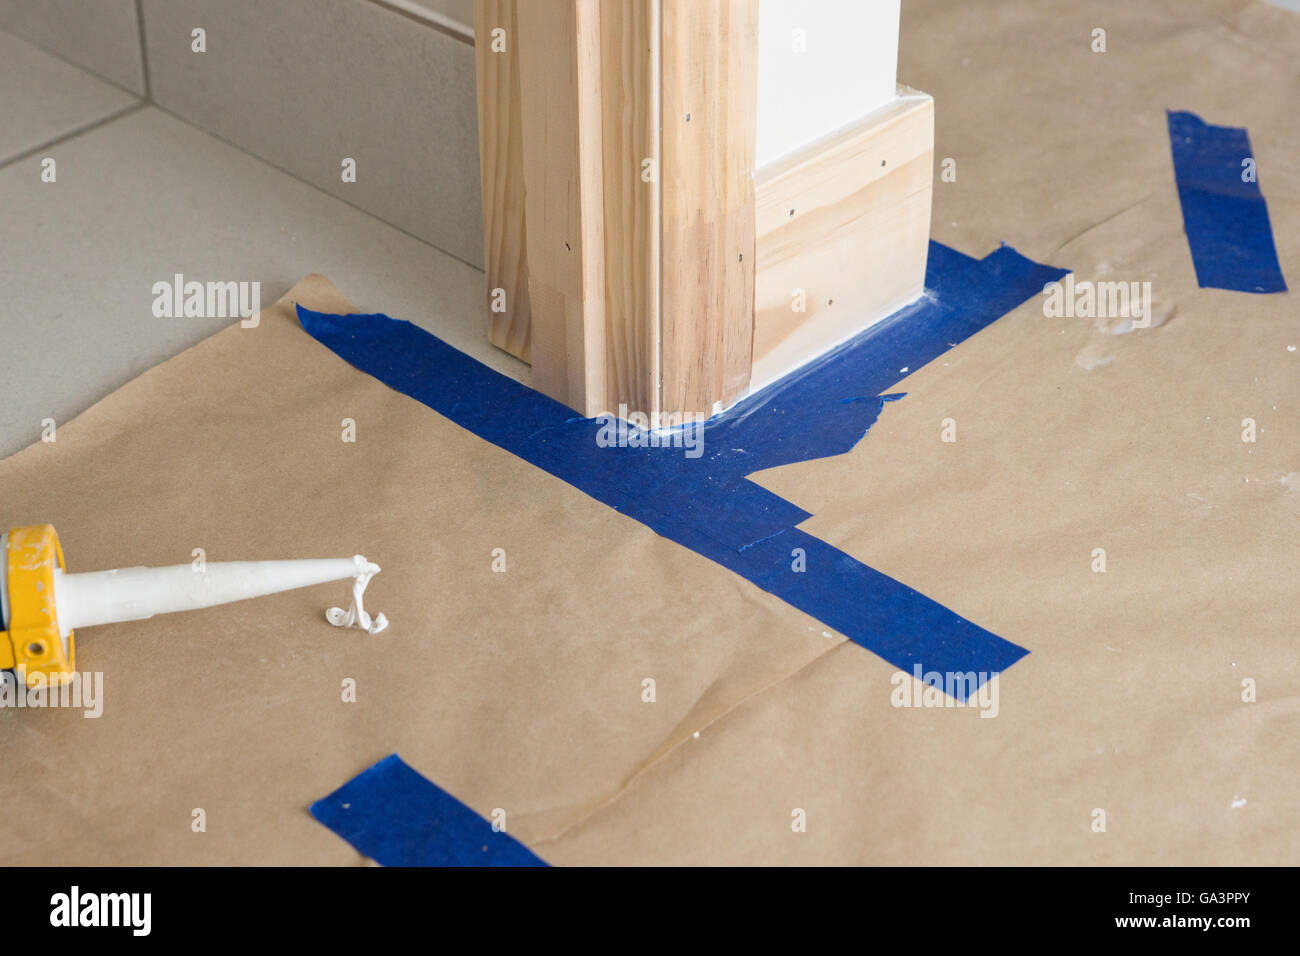 Masking and filling gaps before painting new house - Stock Image